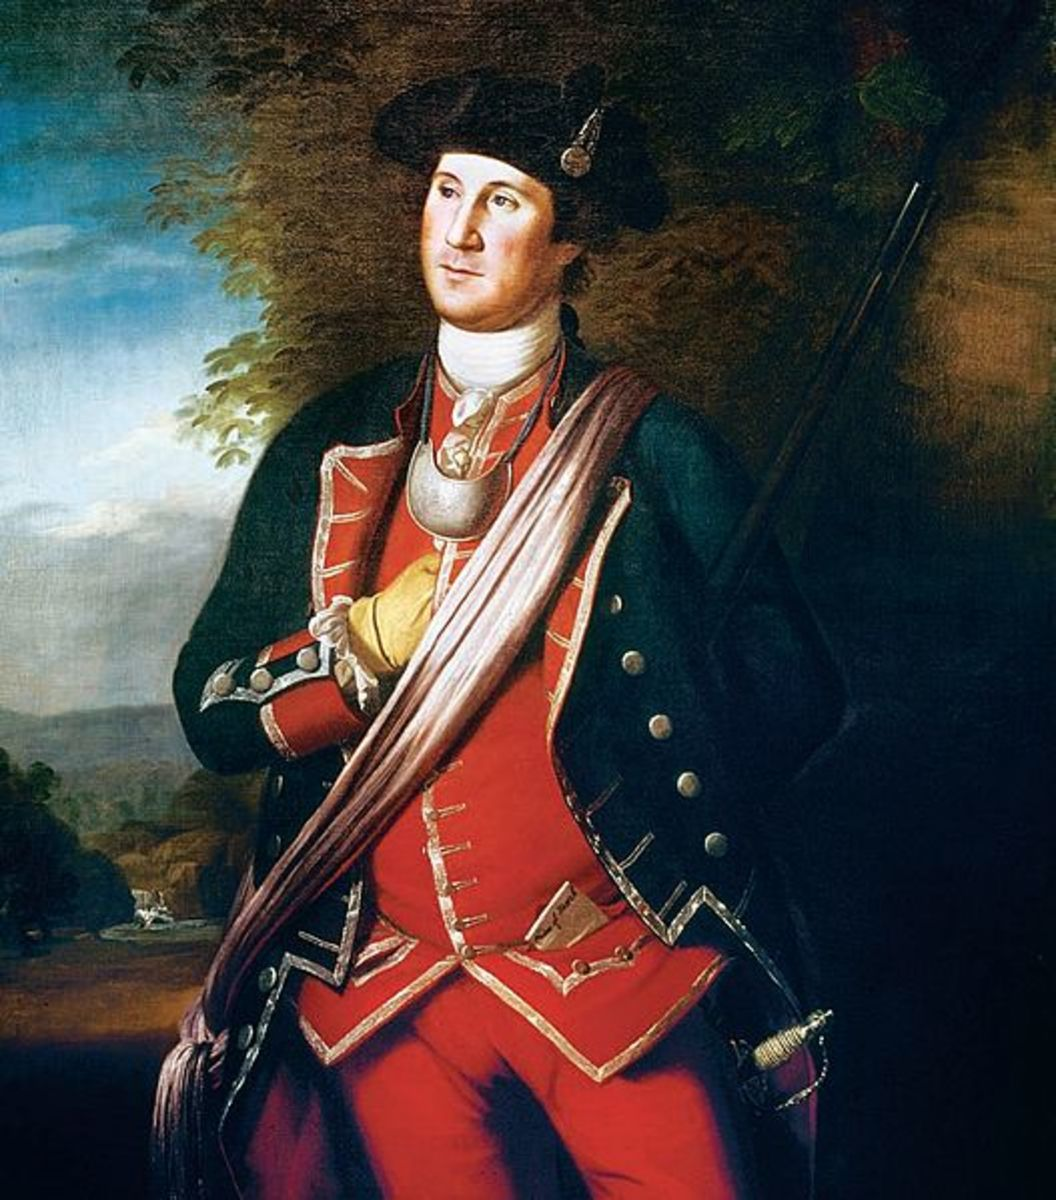 Washington as a redcoat.  Charles Wilson Peale painted him in his French and Indian War uniform in 1772.